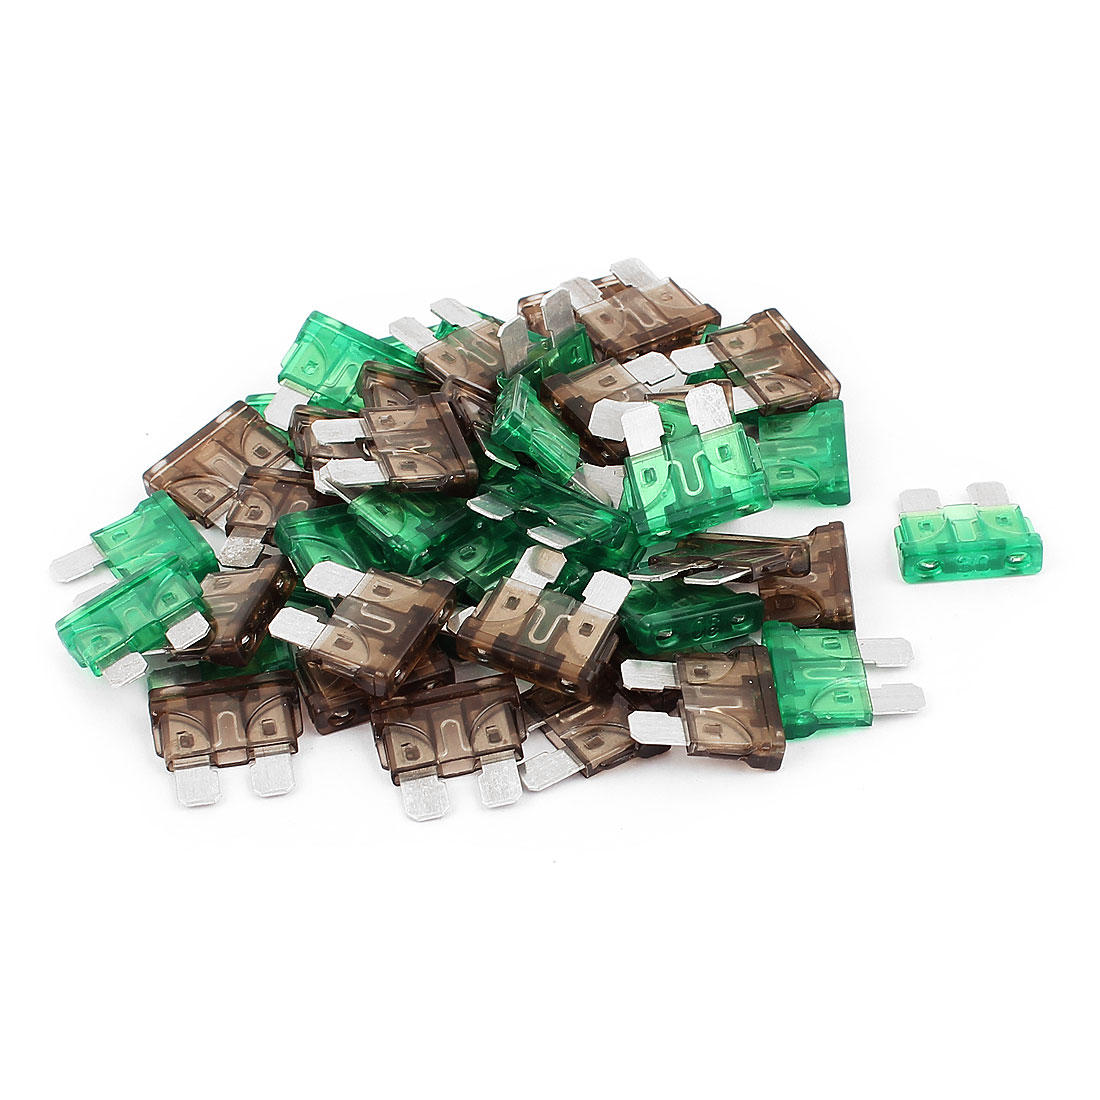 50pcs Automotive Car Truck Caravan SUV Boat ATC ATO Mini Blade Fuses 7.5A 30A Green Gray